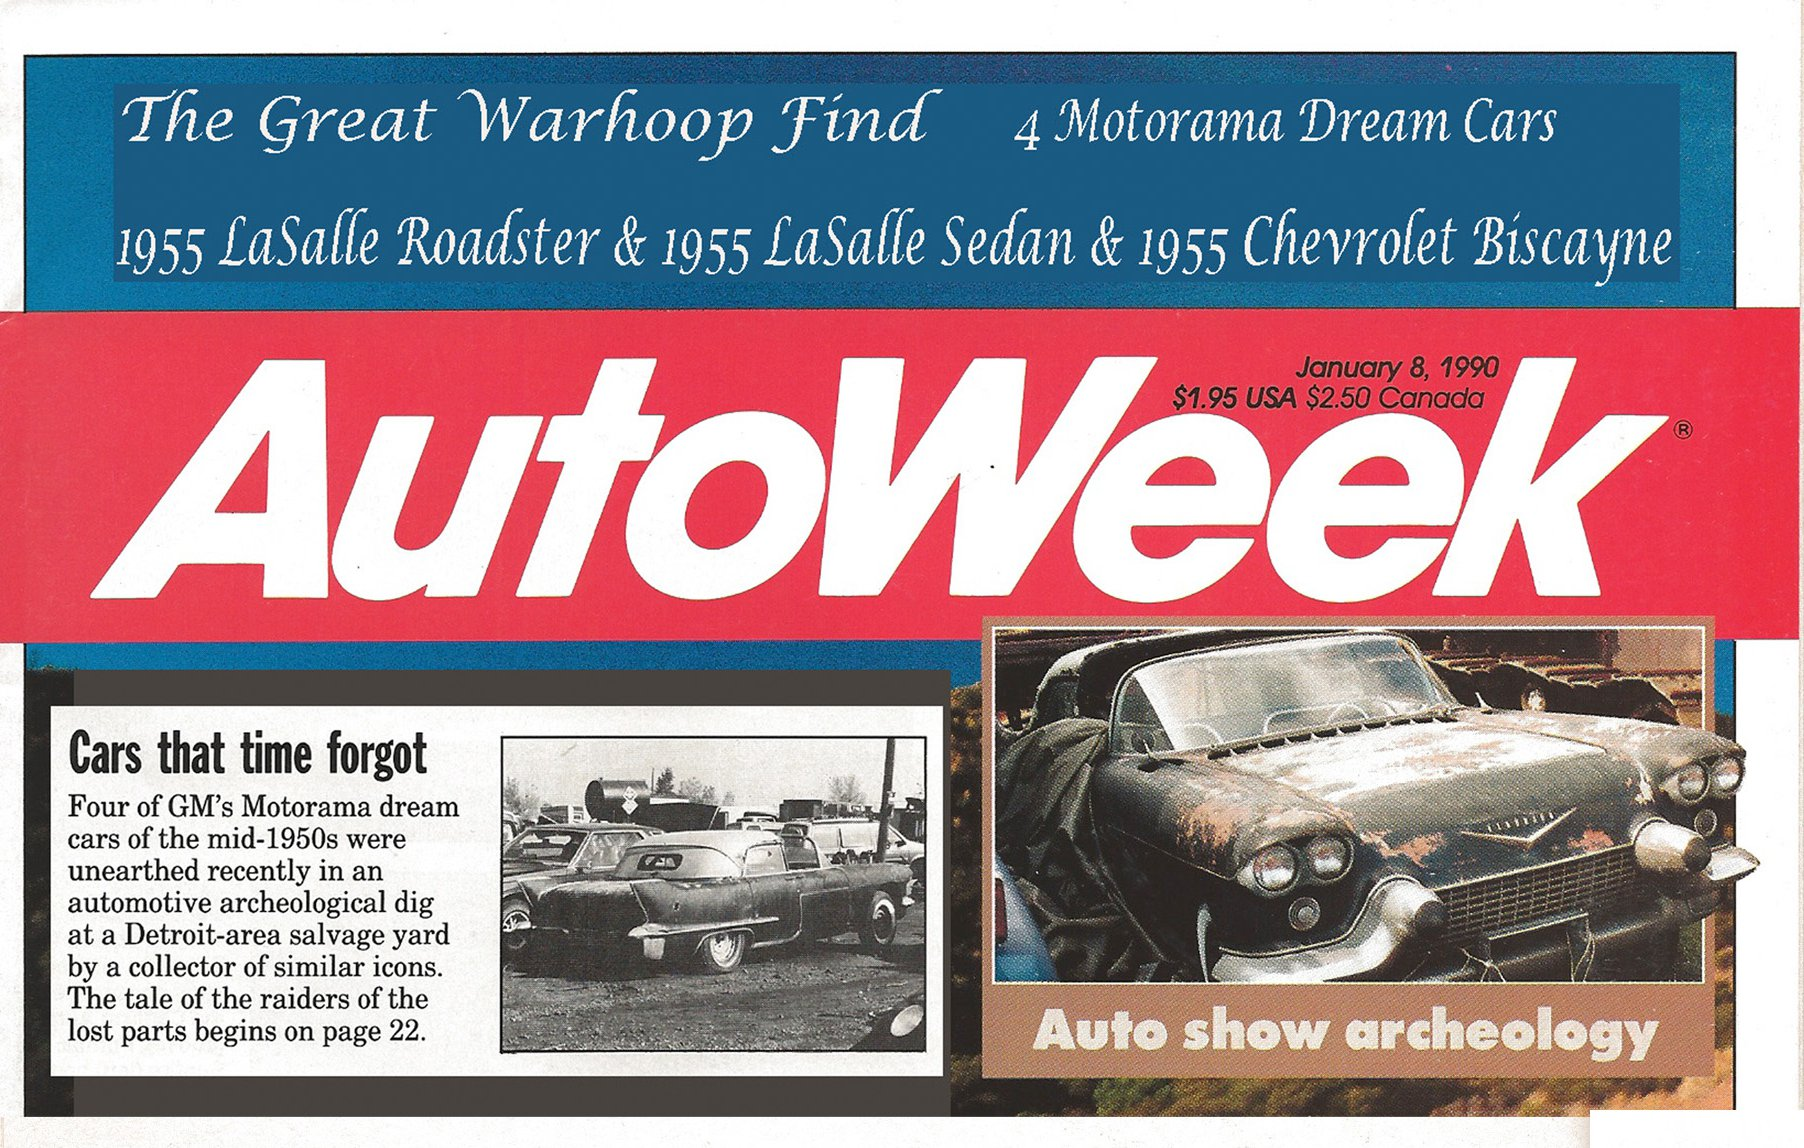 The Cars That Time Forgot by Michael Lamm, Autoweek January 8,1990